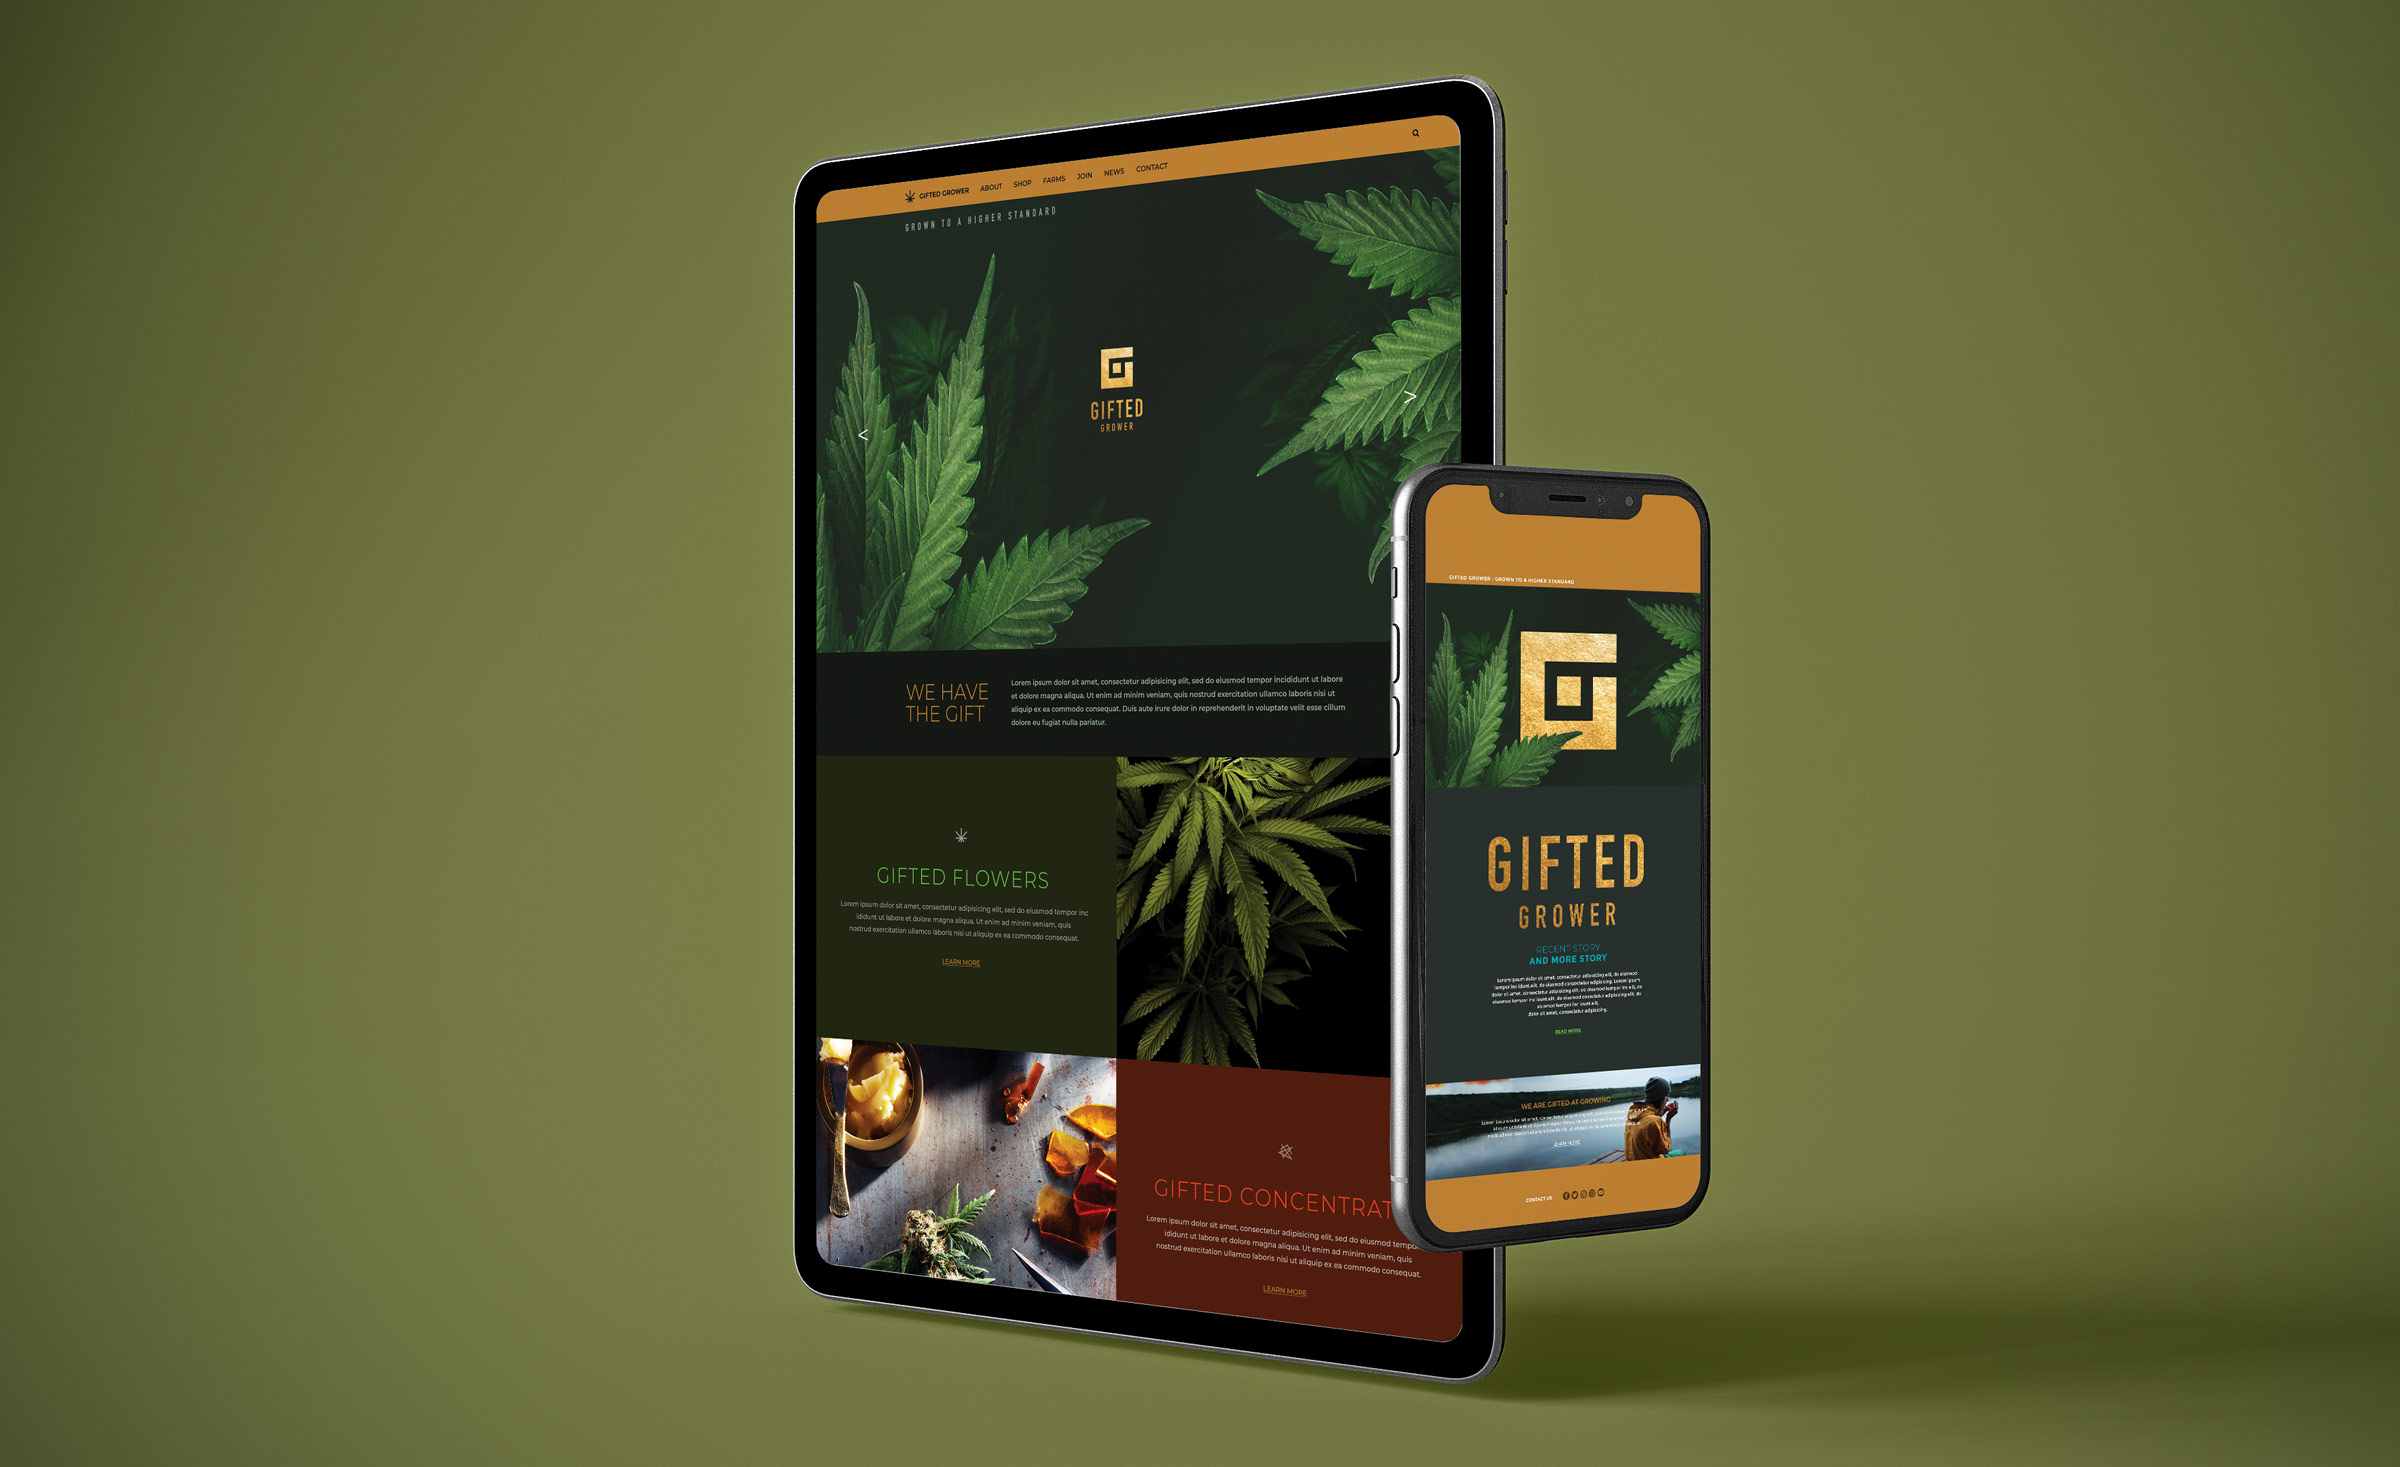 Gifted Grower brand identity, web design